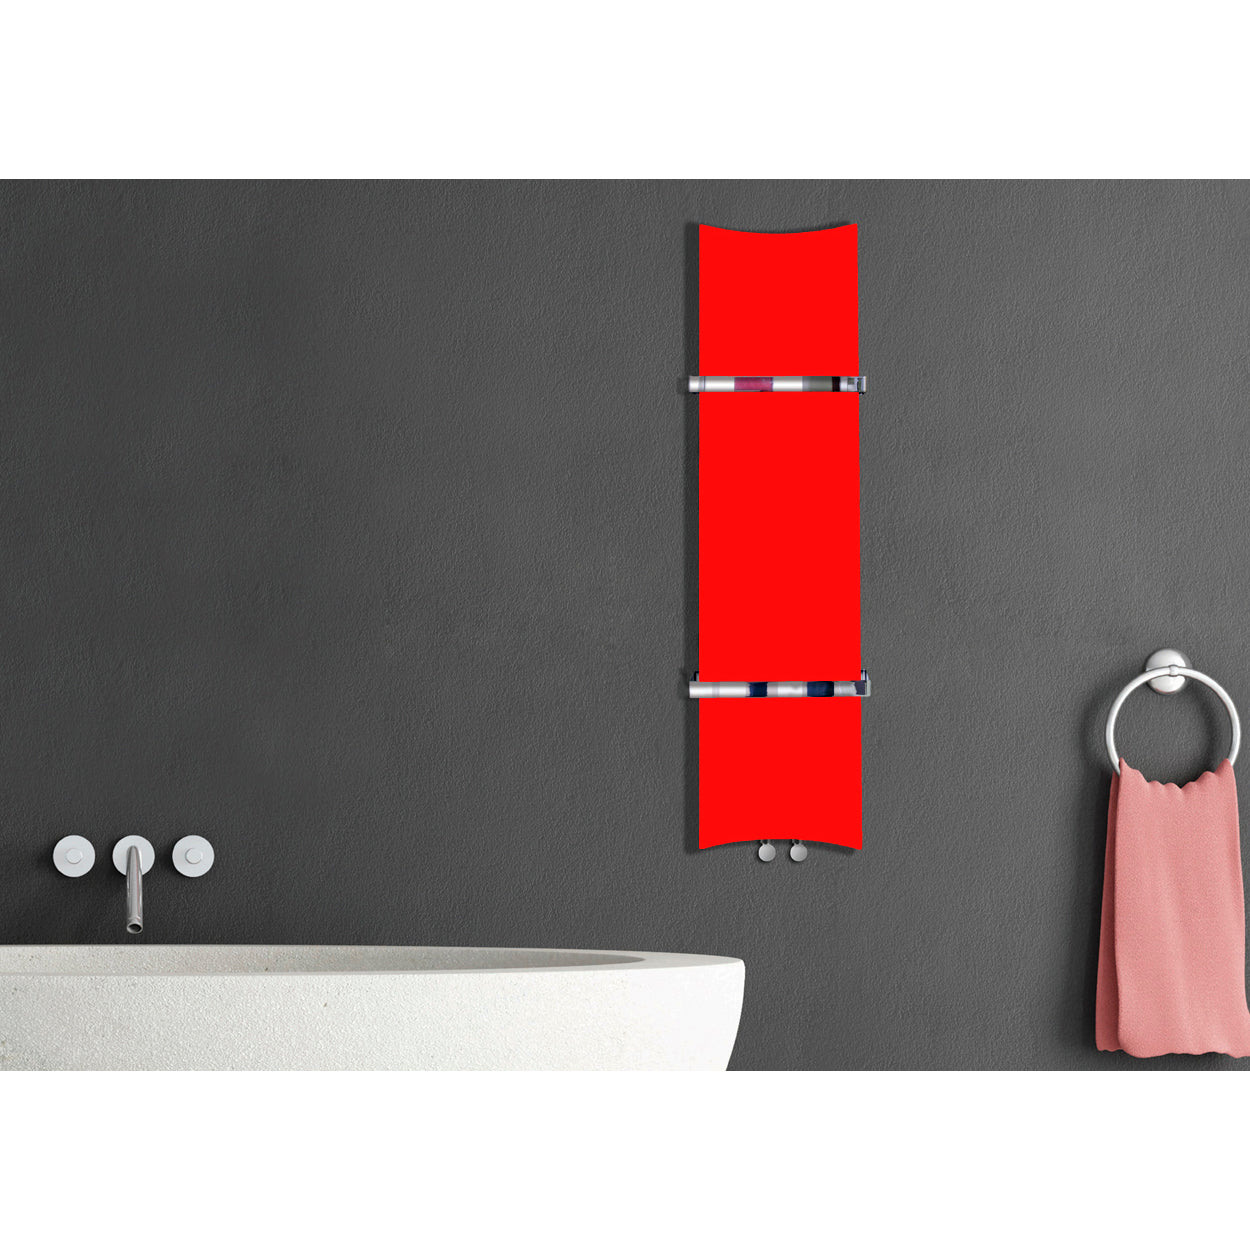 Designer Bone Style 1200 mm High x 300 mm Wide Heated Towel Rail Radiator Red - Elegant Radiators